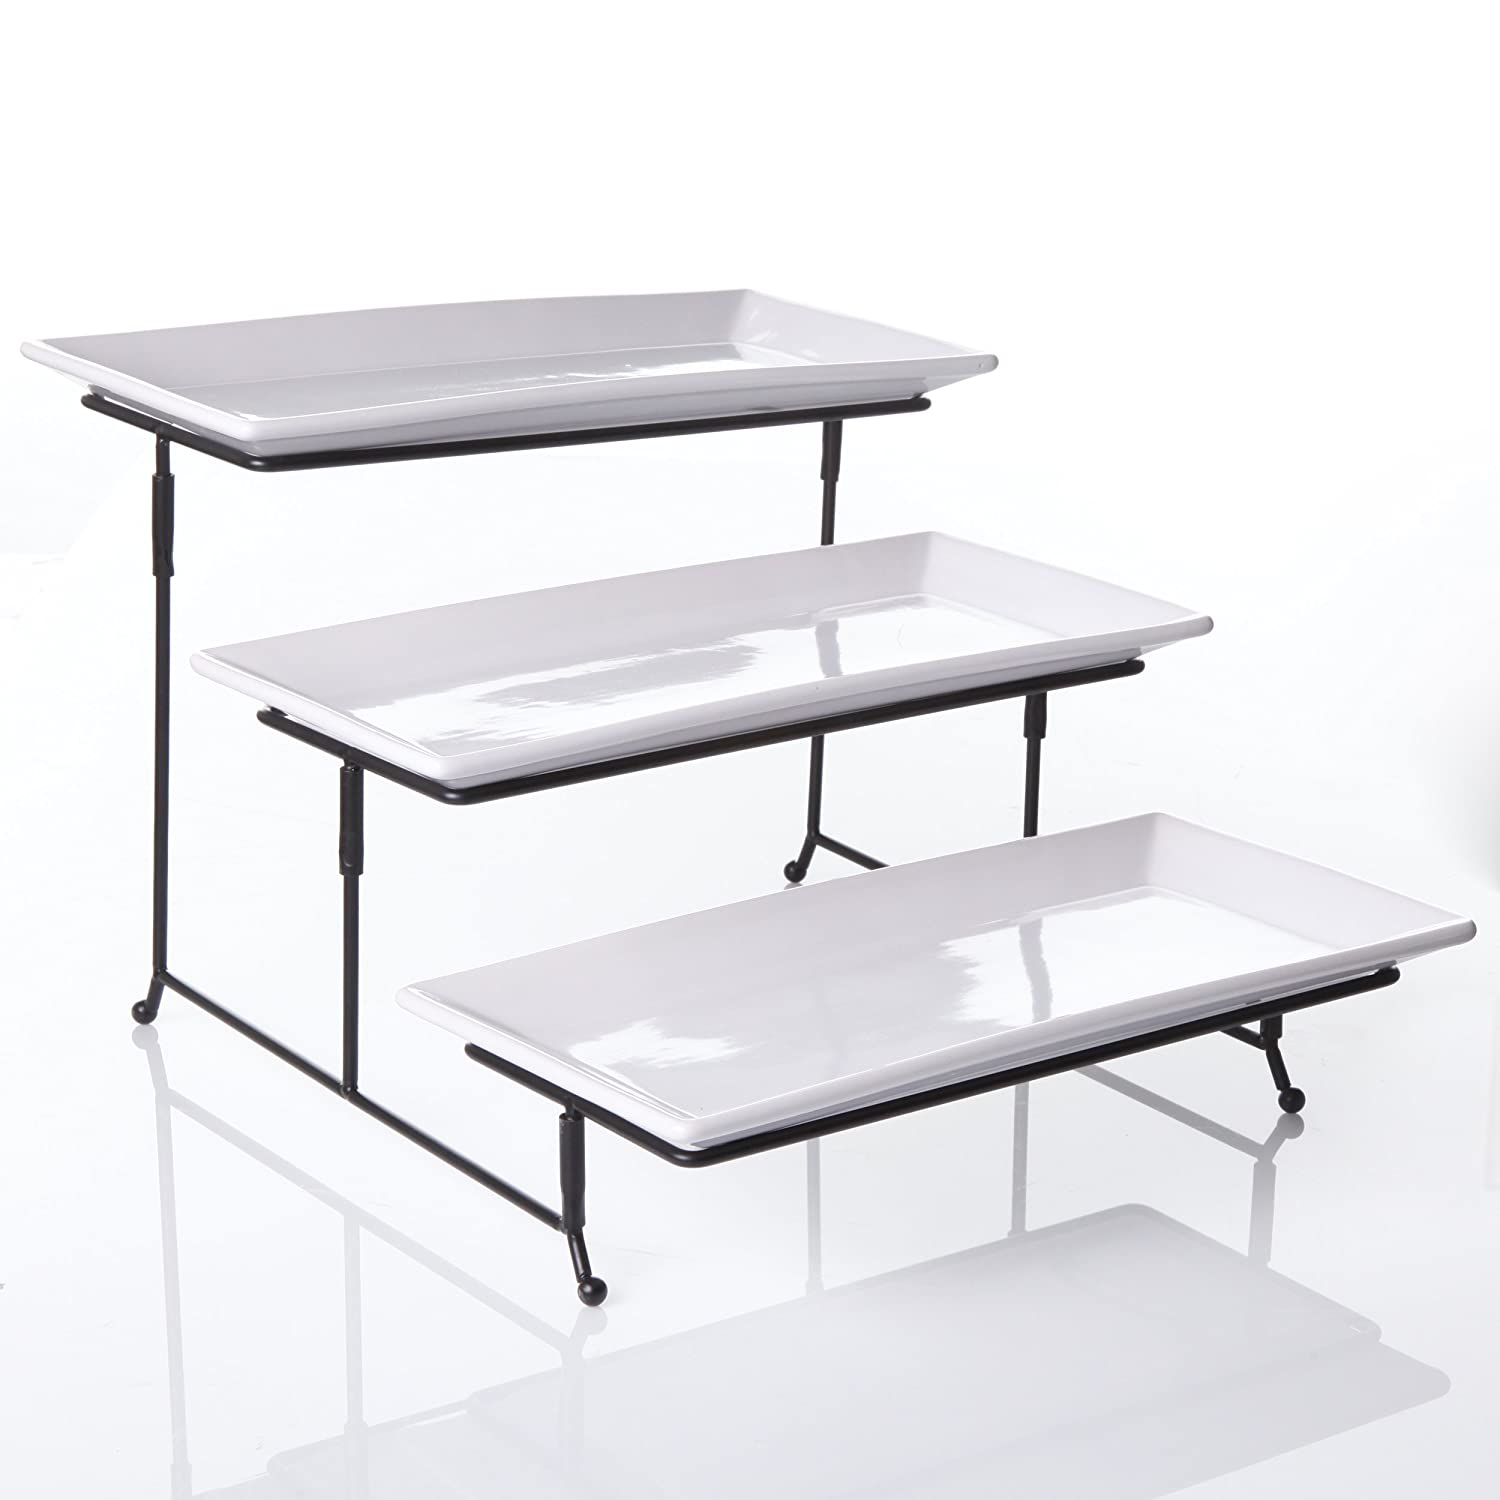 Famous Amazon.com | New Home Deal Tiered Serving Tray Set with  RT61